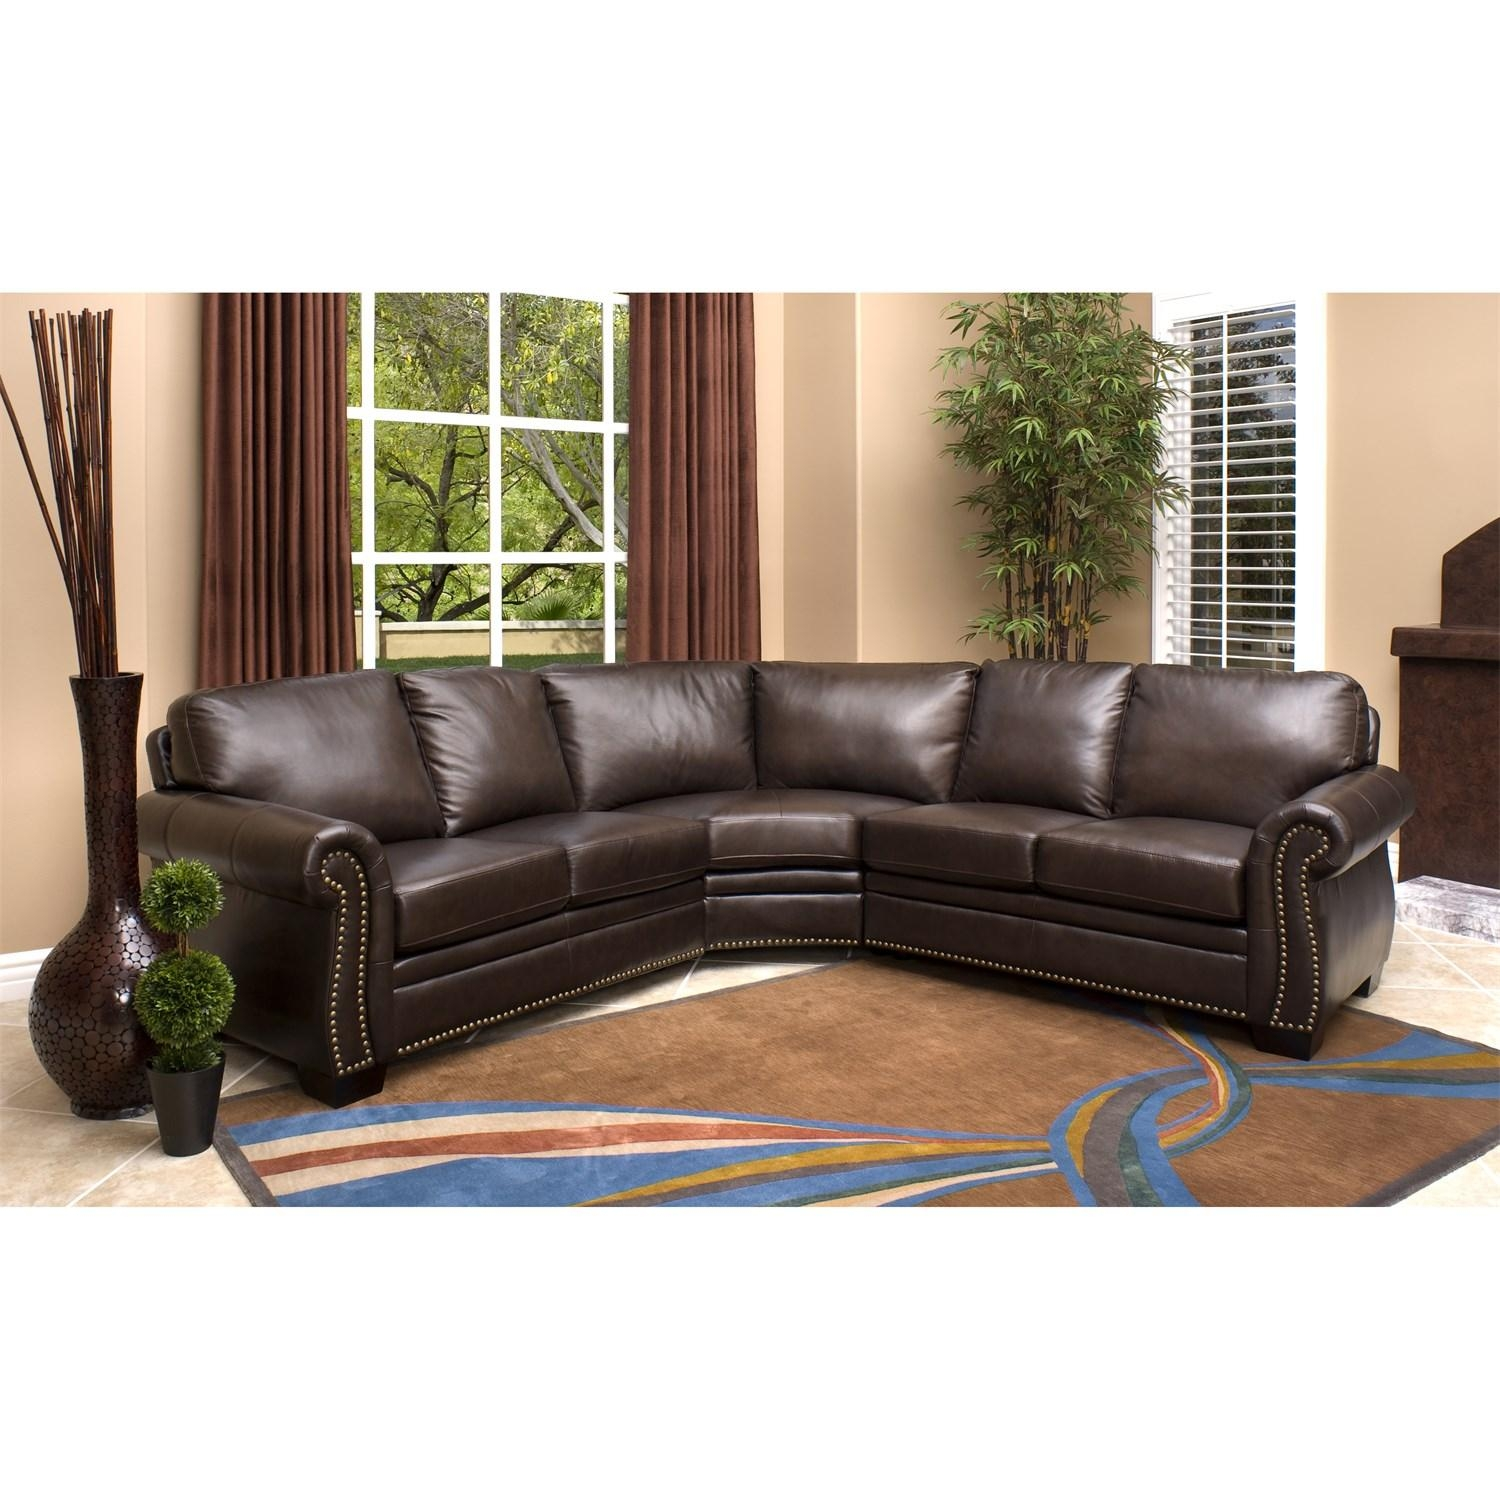 Featured Image of Abbyson Sectional Sofas